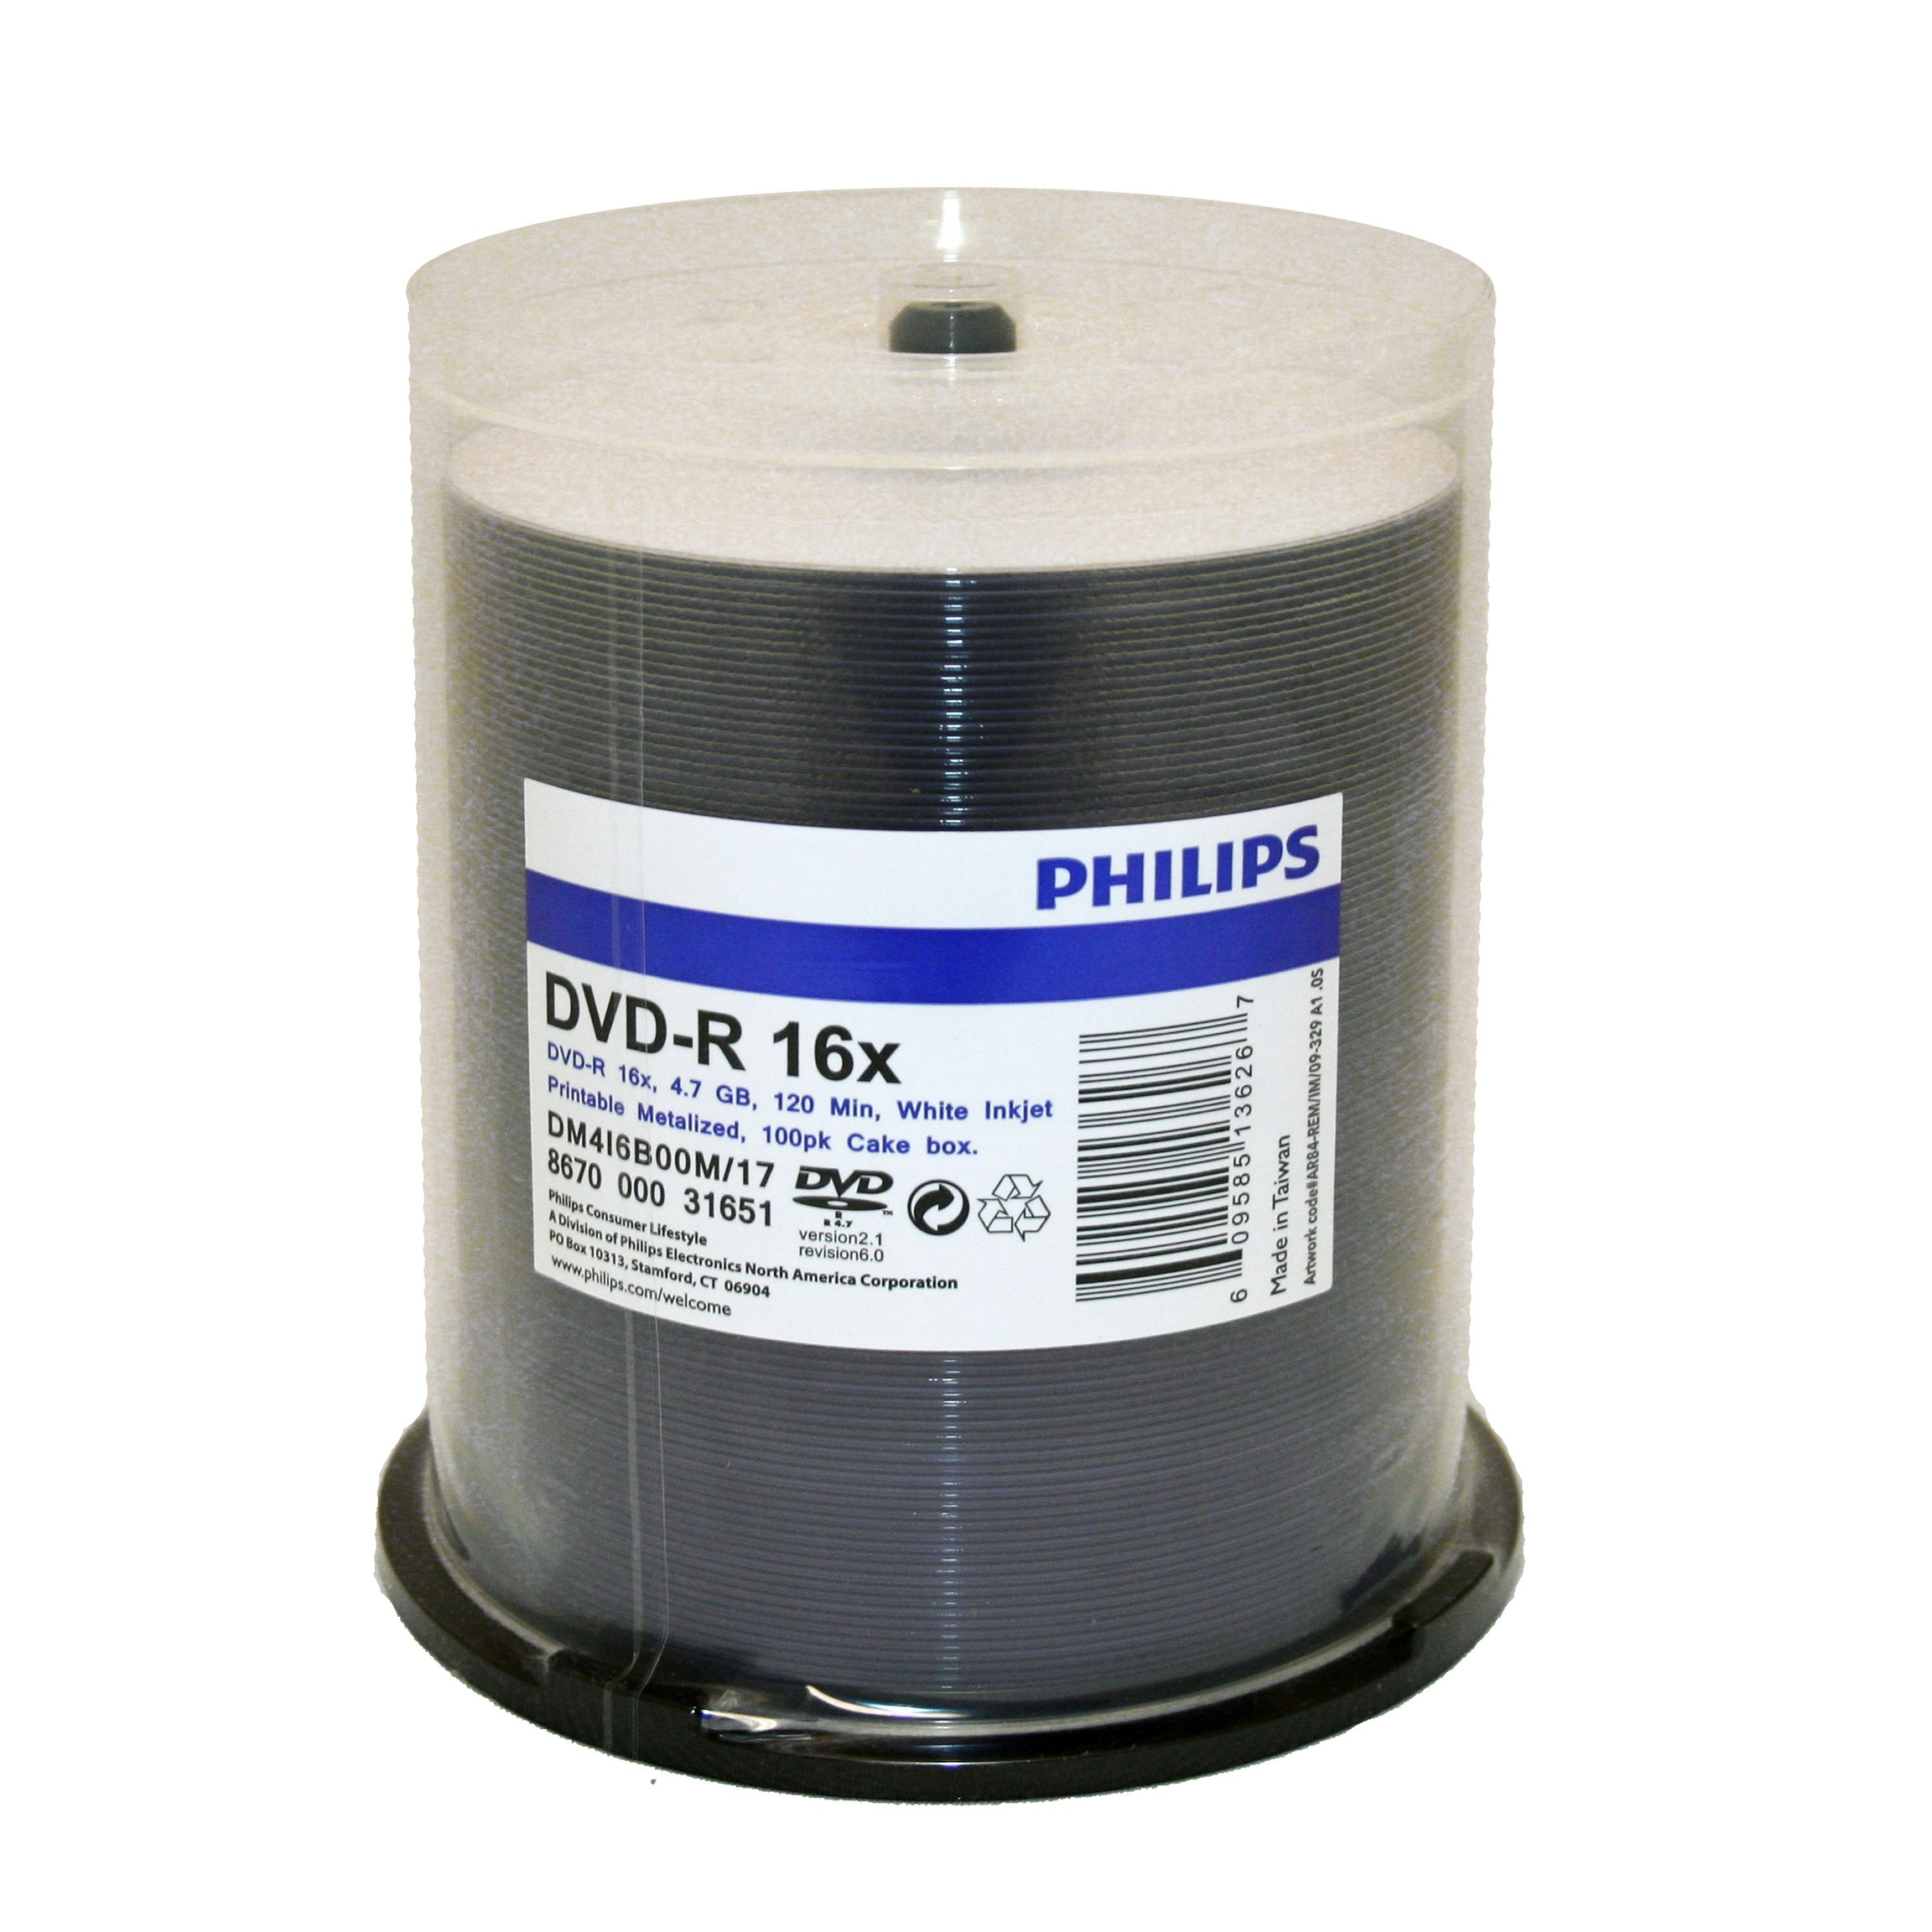 Philips DVD-R Duplication Grade White Inkjet Hub Printable 16X Media 100 Pack in Cake Box (DM416B00M/17)